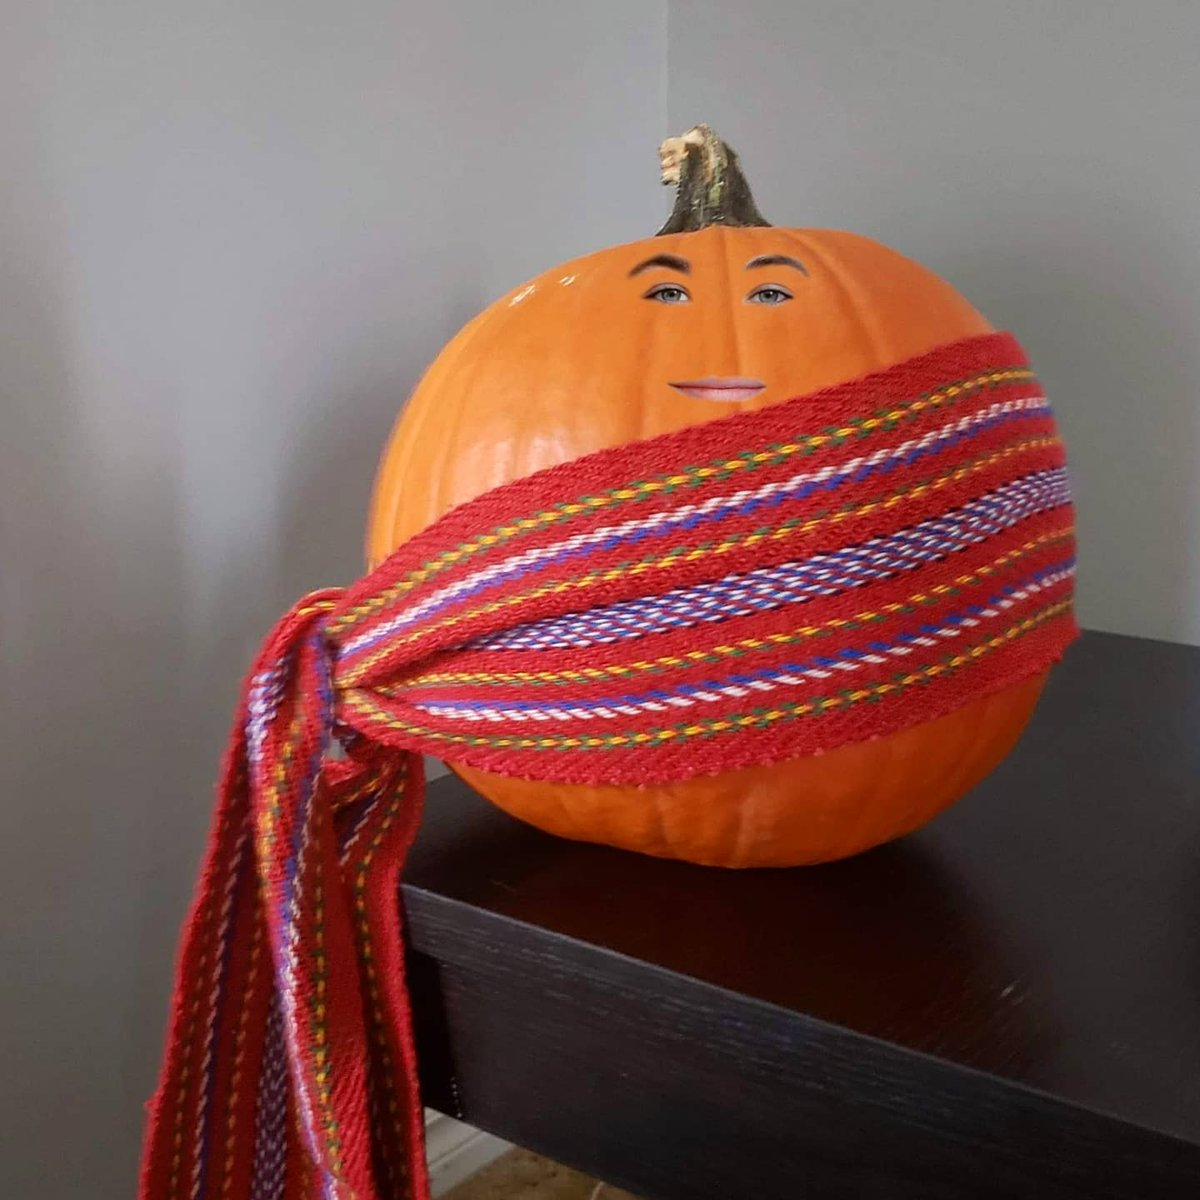 2020 Costume Reveal! I'm Louis Cit-Reil! Do you think I did a gourd job? #metis #halloween #costume https://t.co/TEqlGO2iMp